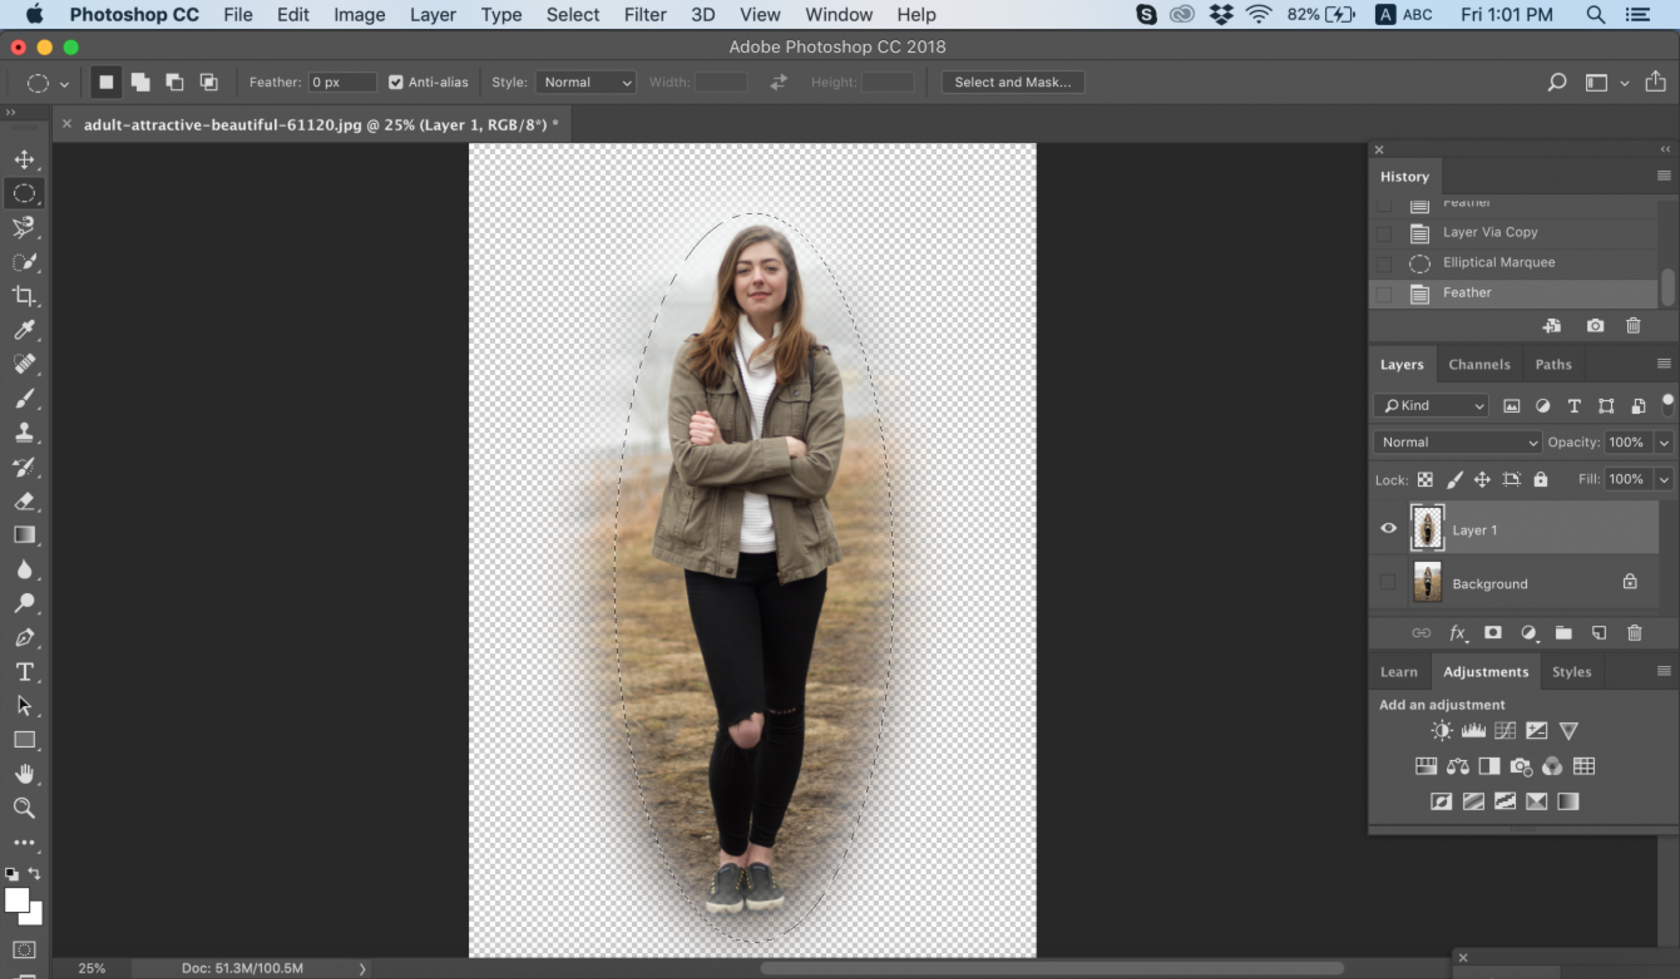 How to Smooth Edges in Photoshop: Photoshop Feather and Other Tools Image10